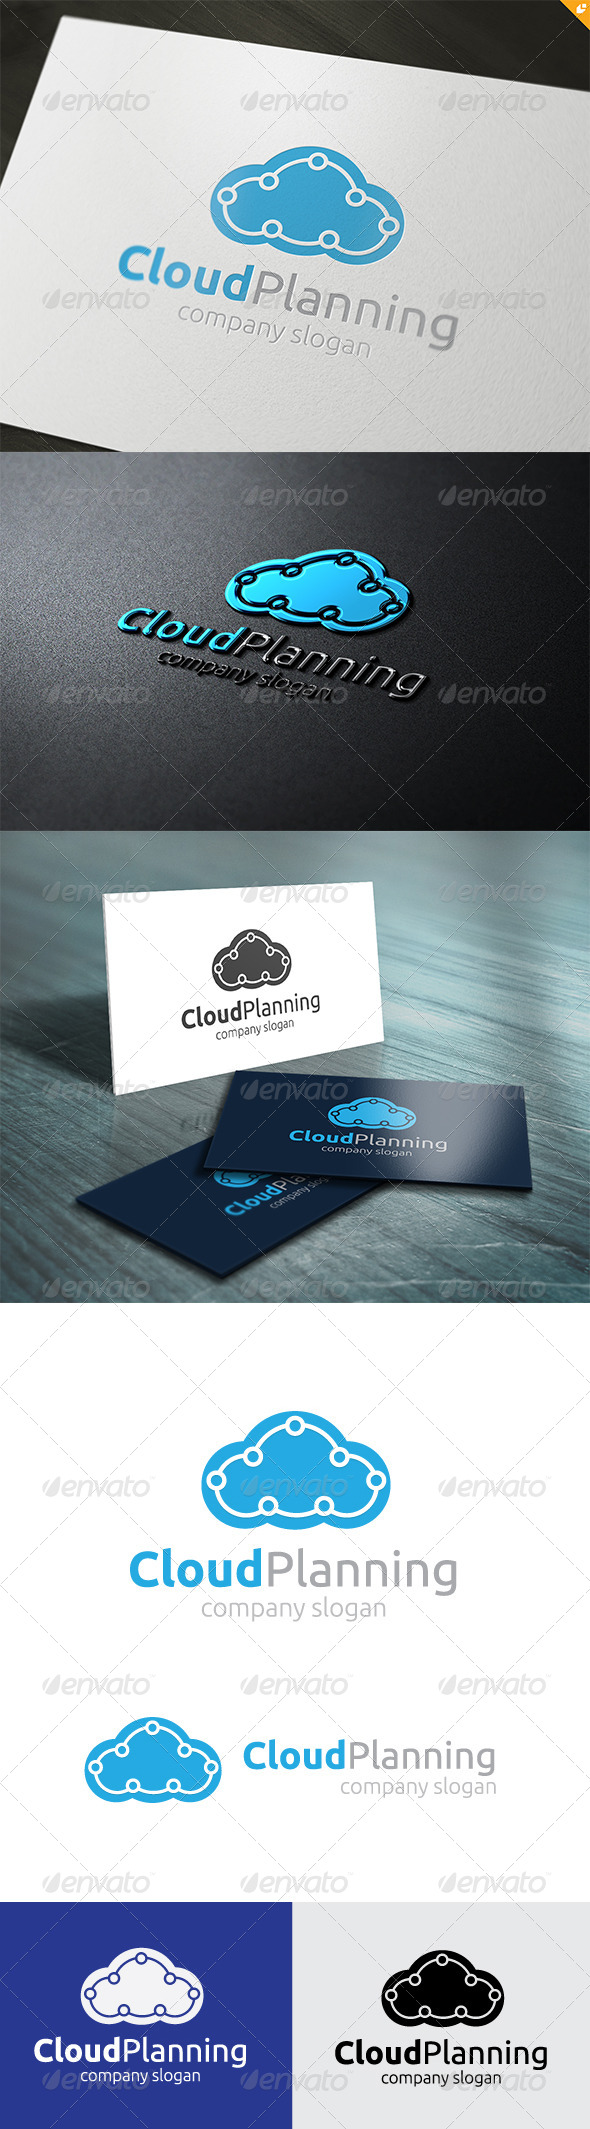 GraphicRiver Cloud Planning Logo 5723668